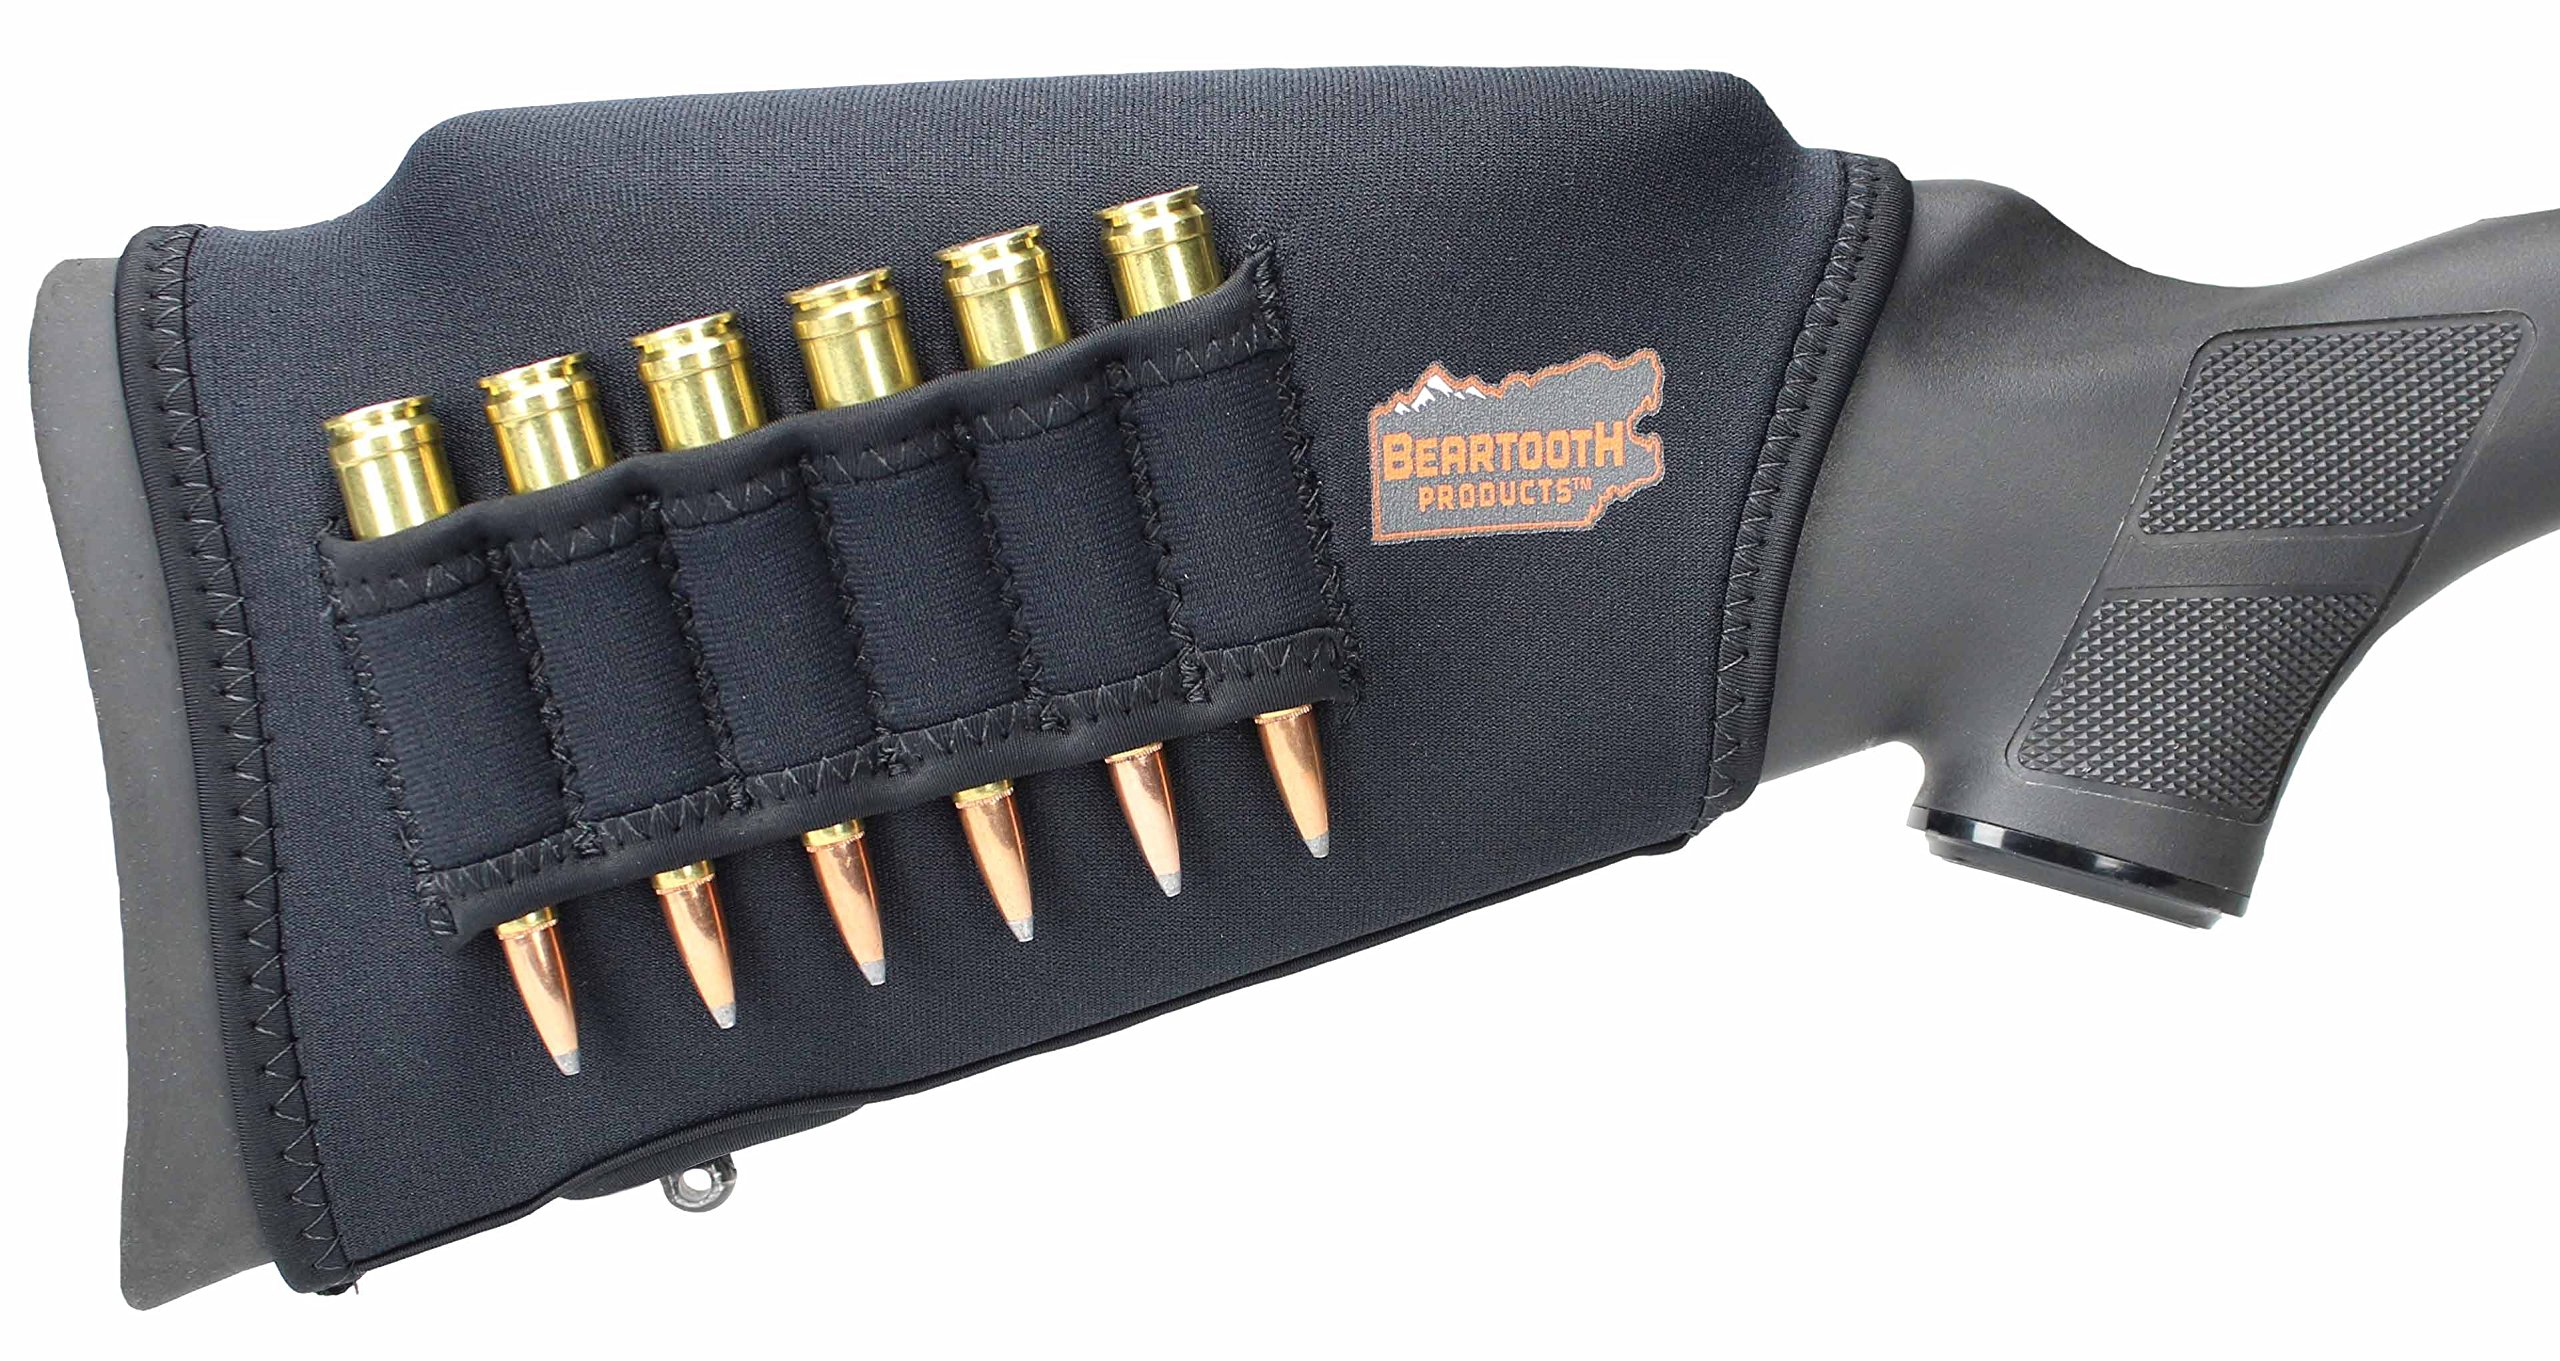 Beartooth Comb Raising Kit 2.0 - Neoprene Gun Stock Sleeve + (5) Hi-density Foam Inserts - RIFLE MODEL (Black) by Beartooth Products